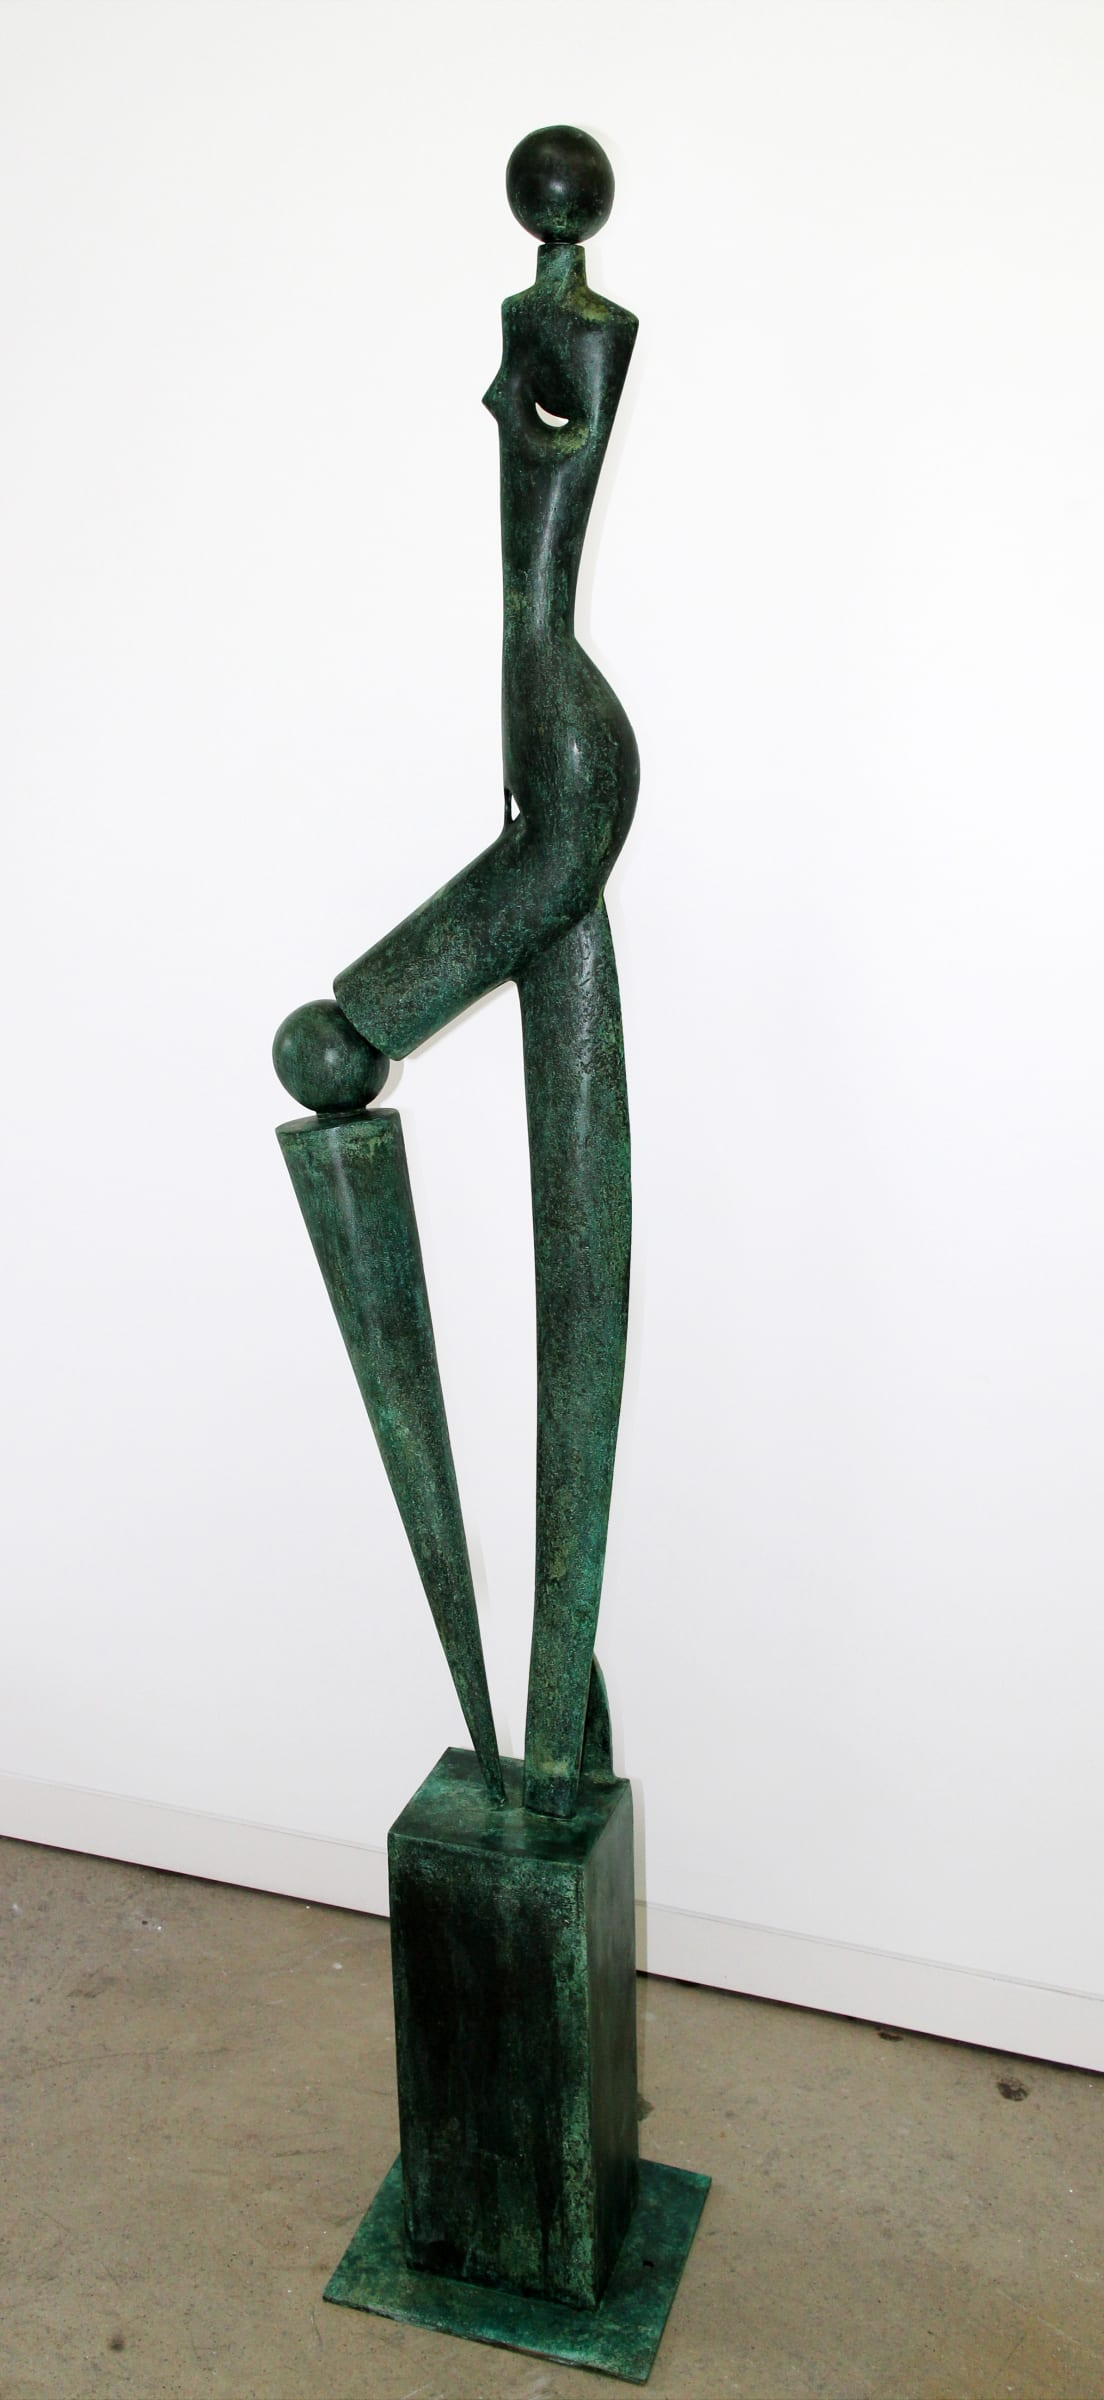 """<span class=""""link fancybox-details-link""""><a href=""""/exhibitions/59/works/artworks4992/"""">View Detail Page</a></span><div class=""""medium"""">Cast Patinated Bronze</div> <div class=""""dimensions"""">79.9 x 13.2 x 13 in<br />203 x 33.5 x 33 cm</div>"""